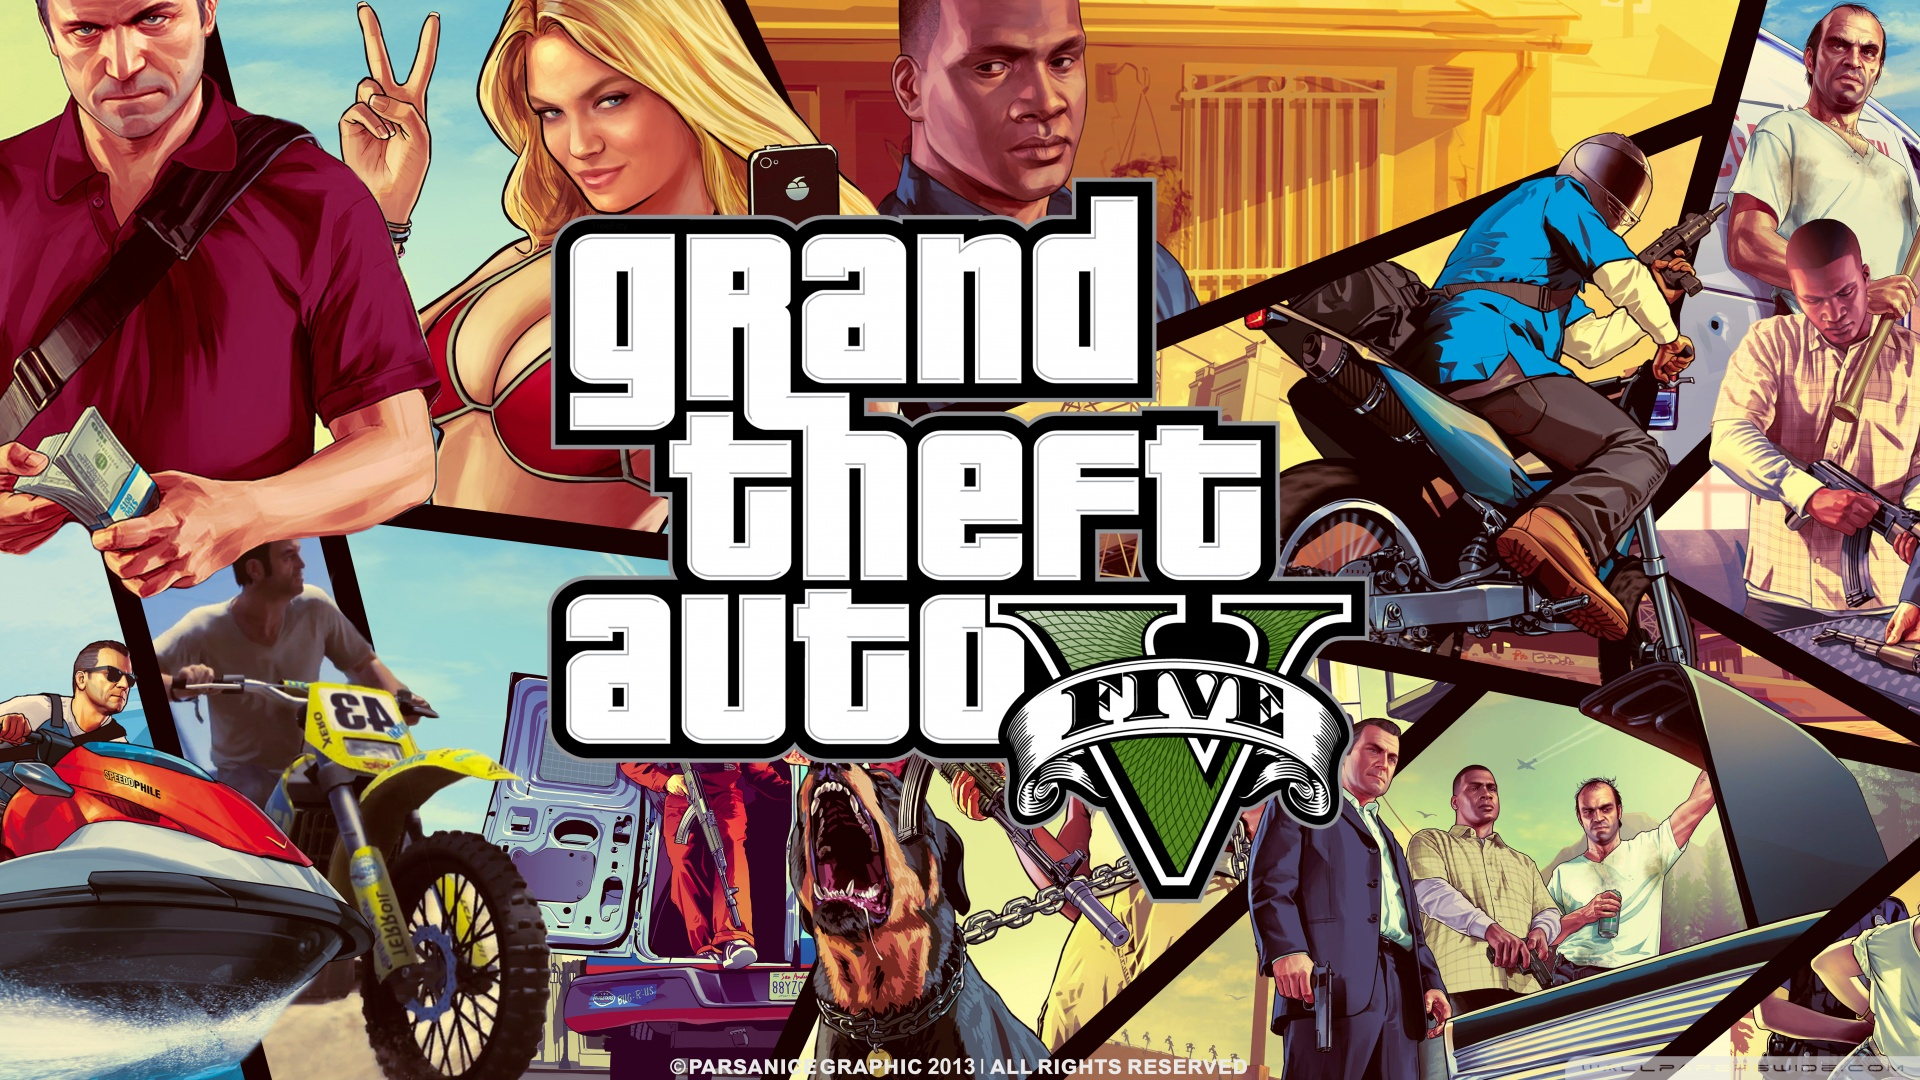 Grand Theft Auto 5 Hd Wallpapers Sf Wallpaper